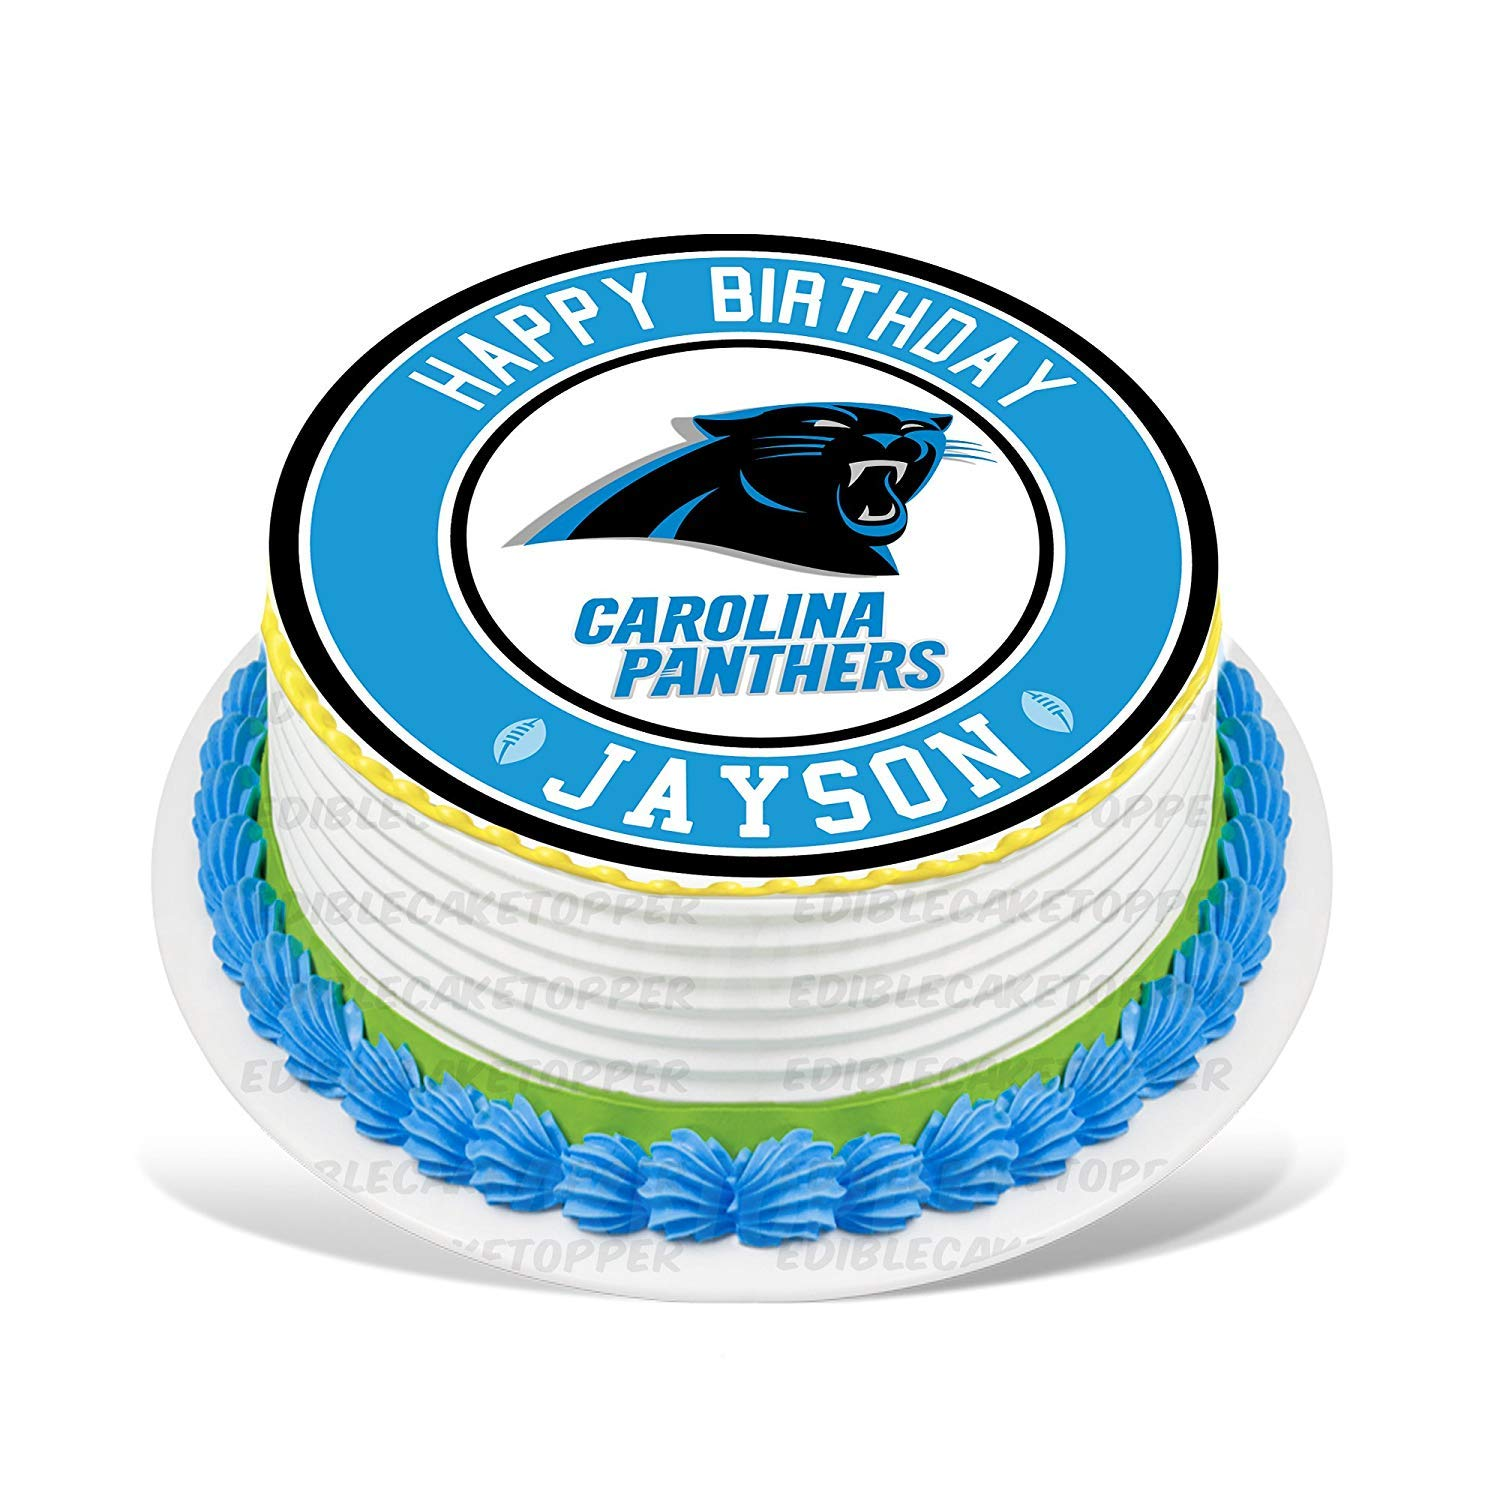 Carolina Panthers Edible Cake Topper Personalized Birthday 10